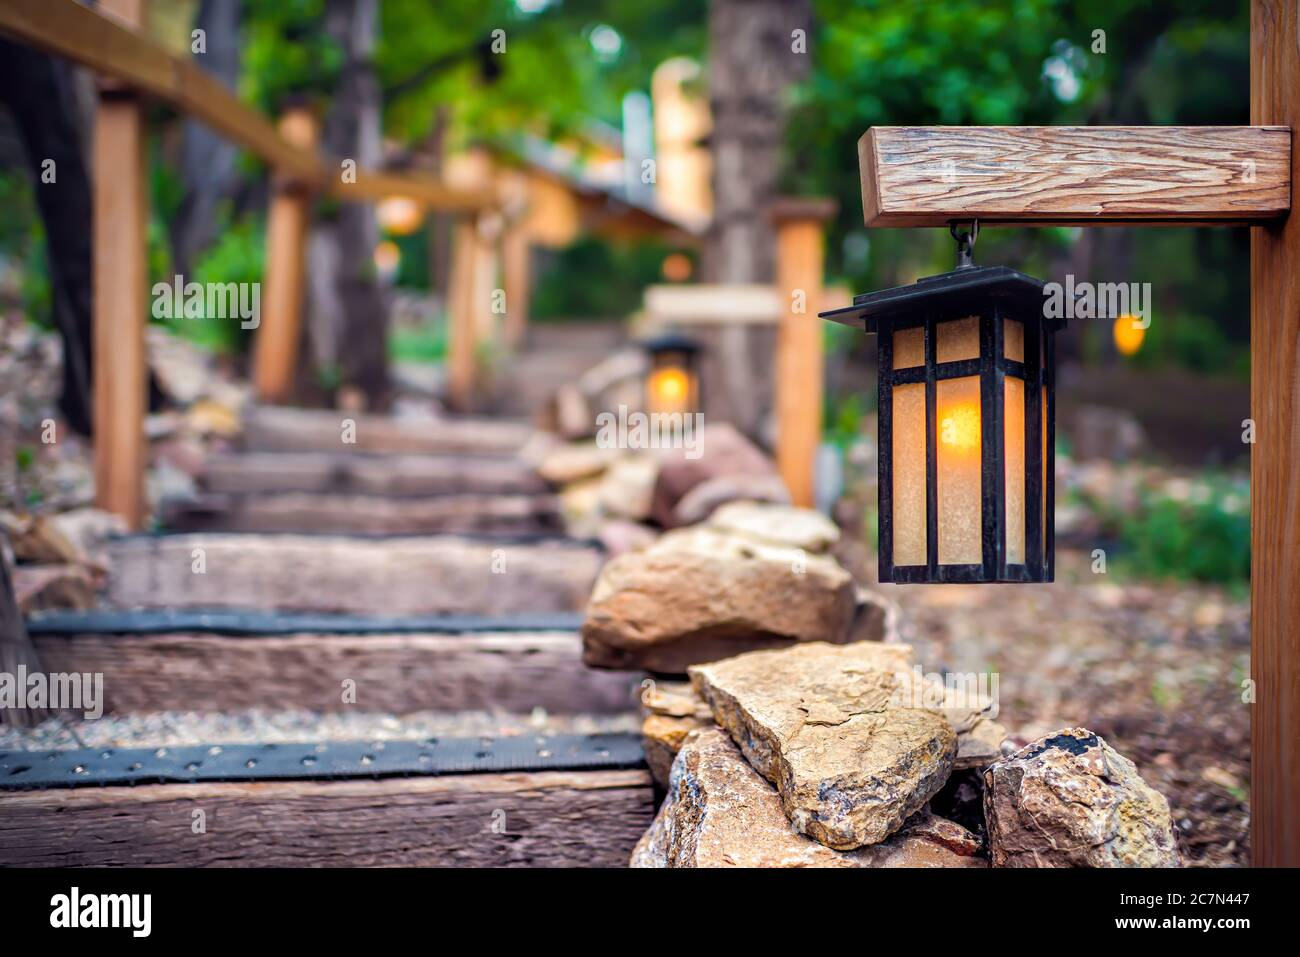 Evening Illuminated Hanging Lantern Lamp Light On Wooden Pole Post In Japanese Garden With Steps Stairs And Green Forest Foliage By Railing Background Stock Photo Alamy